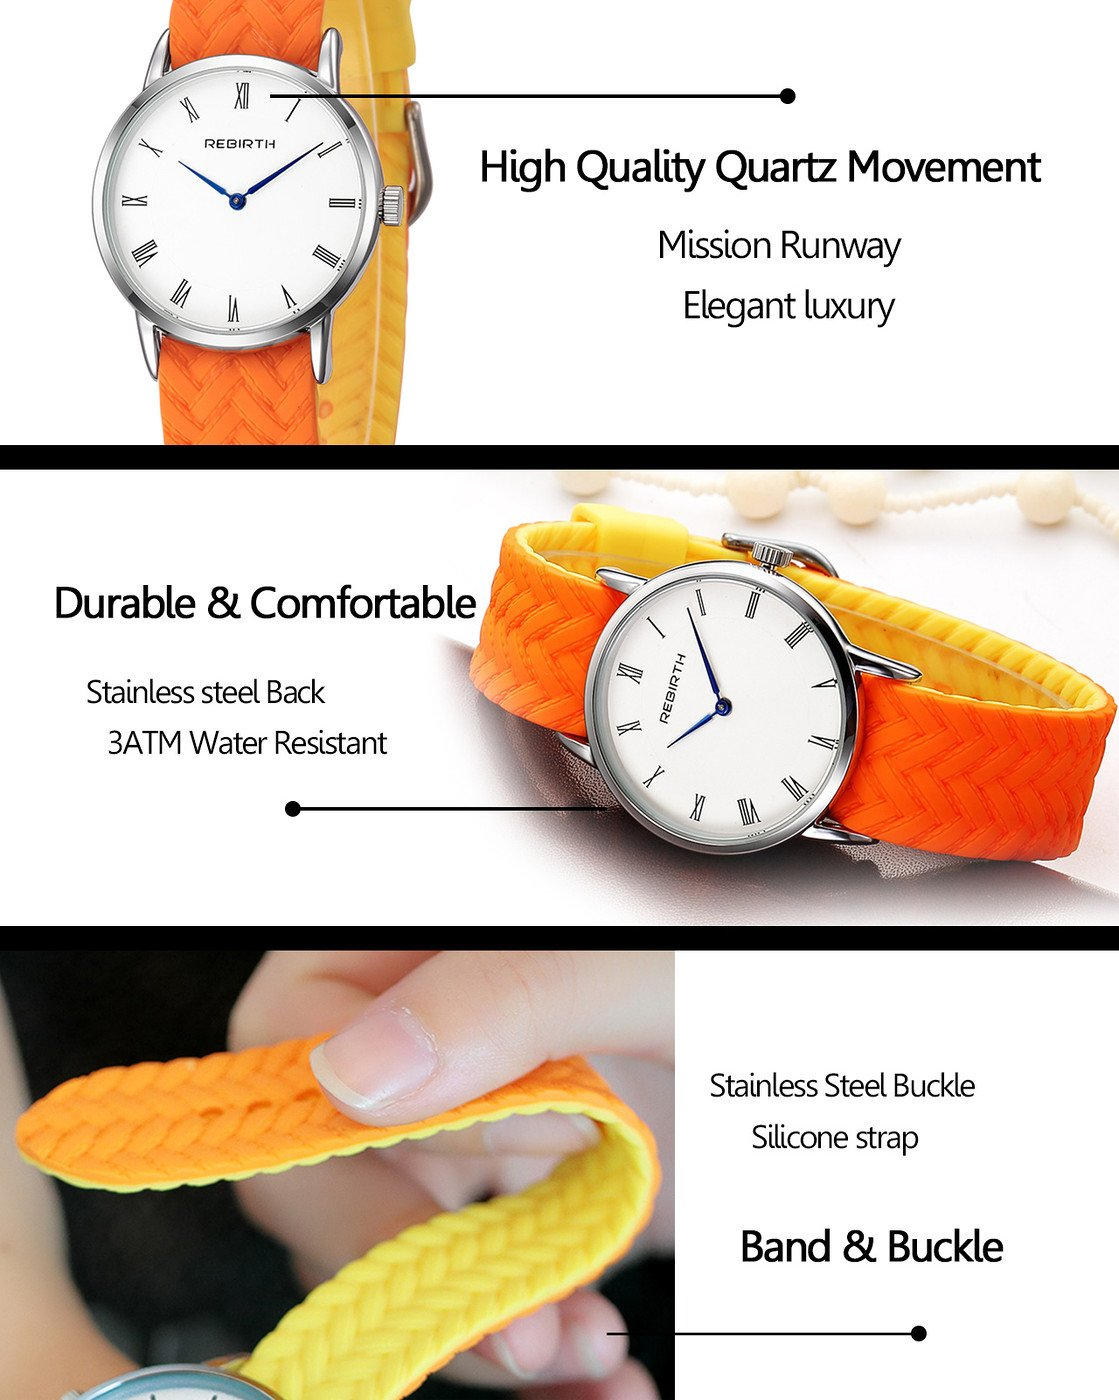 Top Plaza Unisex Casual Simple Silicone Strap Analog Quartz Watch Unique Reversible Doulbe Color Band Japanese Quartz Movement Waterproof Watch(Black and White) by Top Plaza (Image #6)